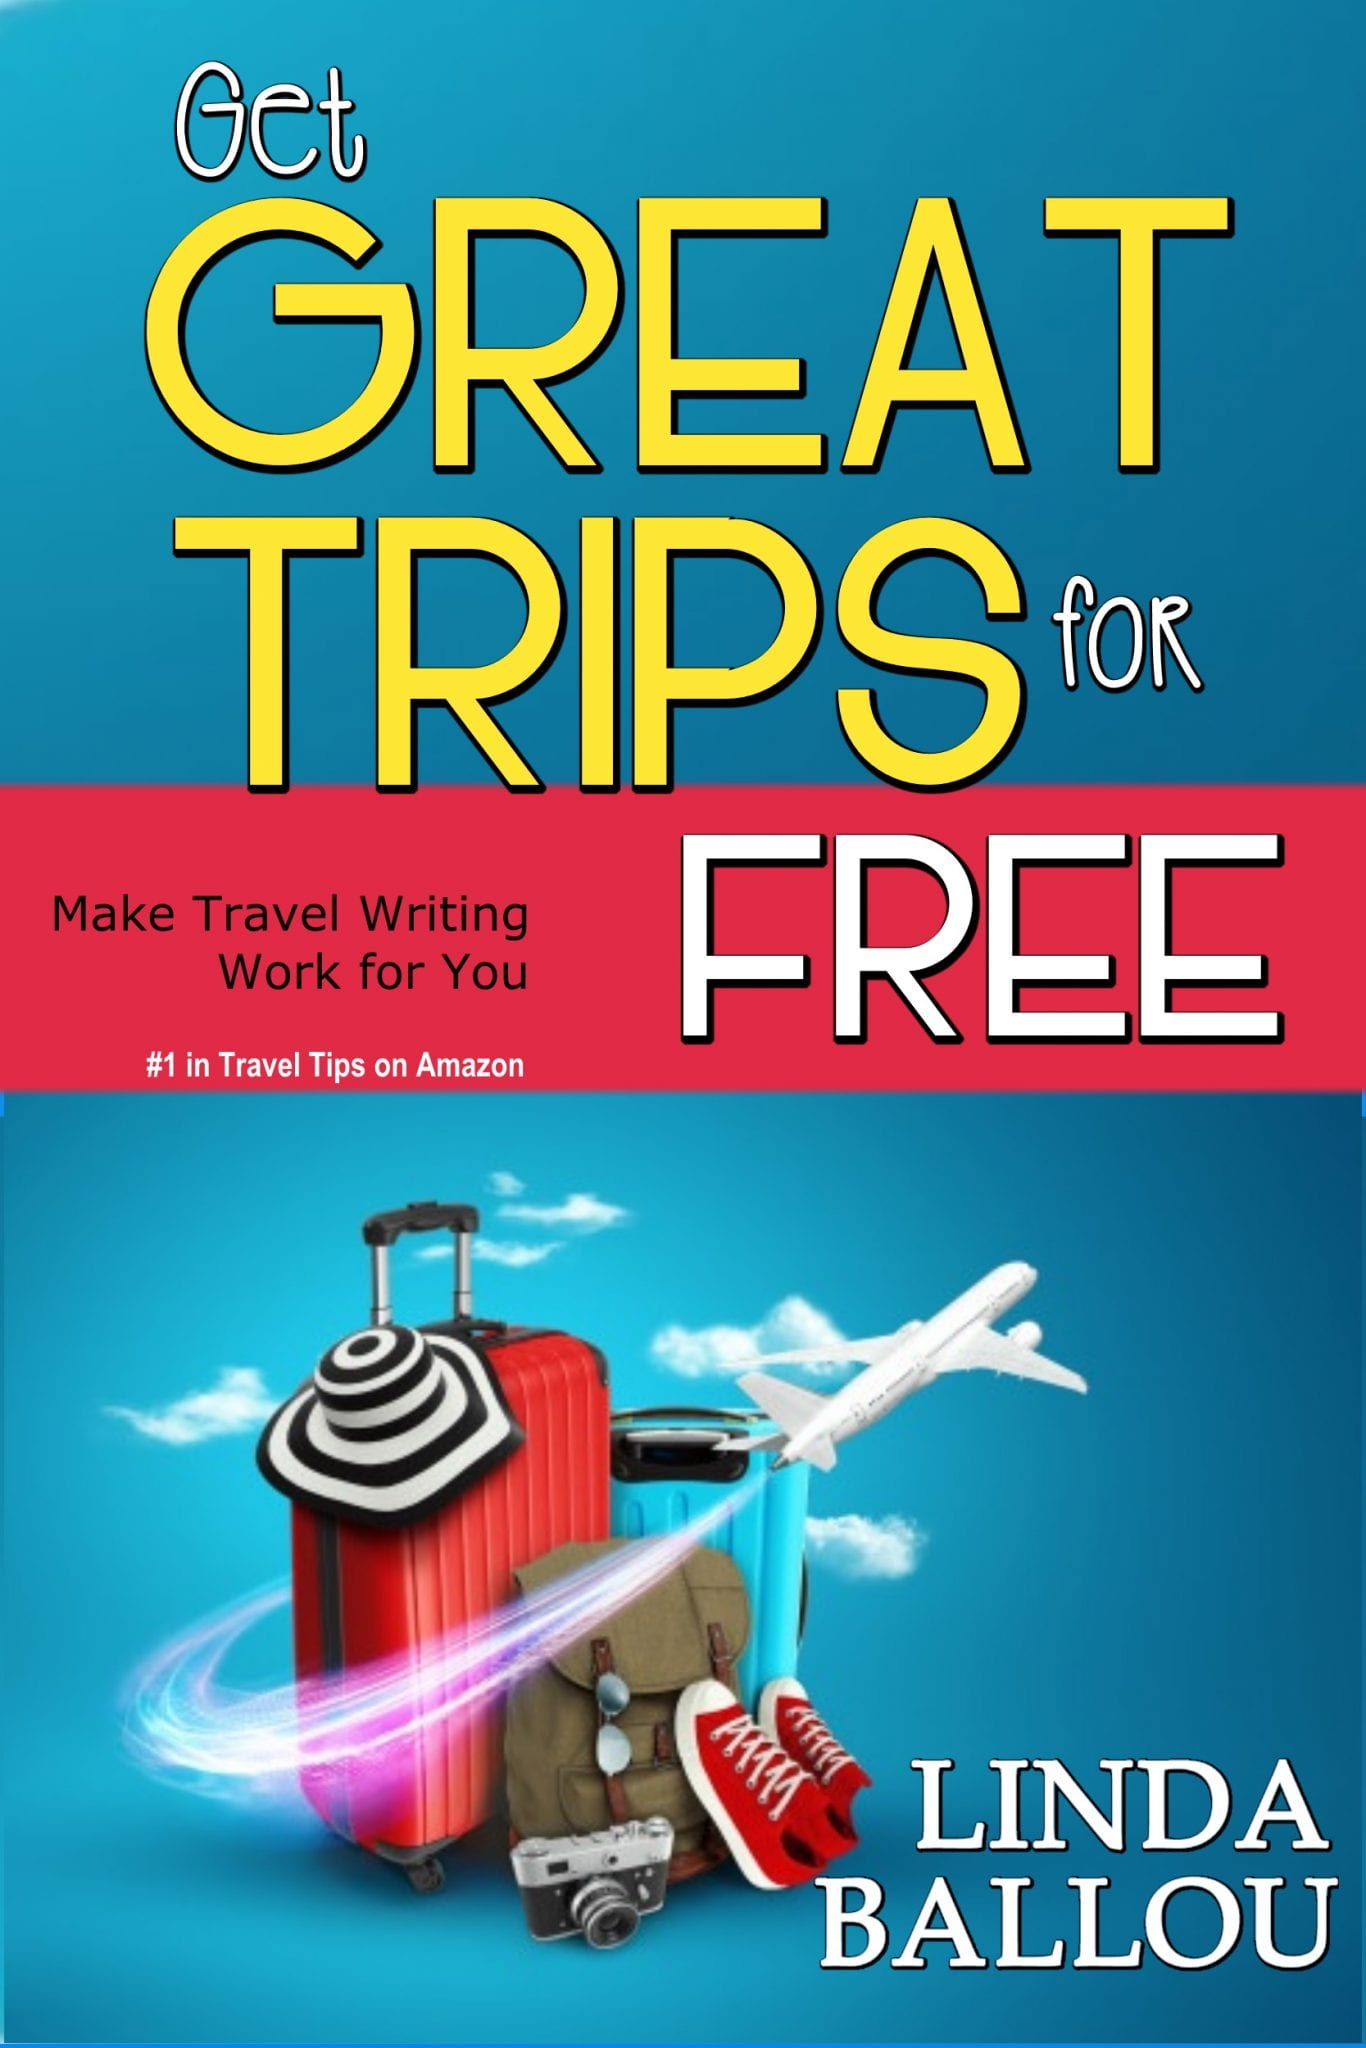 GreatTrips_BEST SELLER1